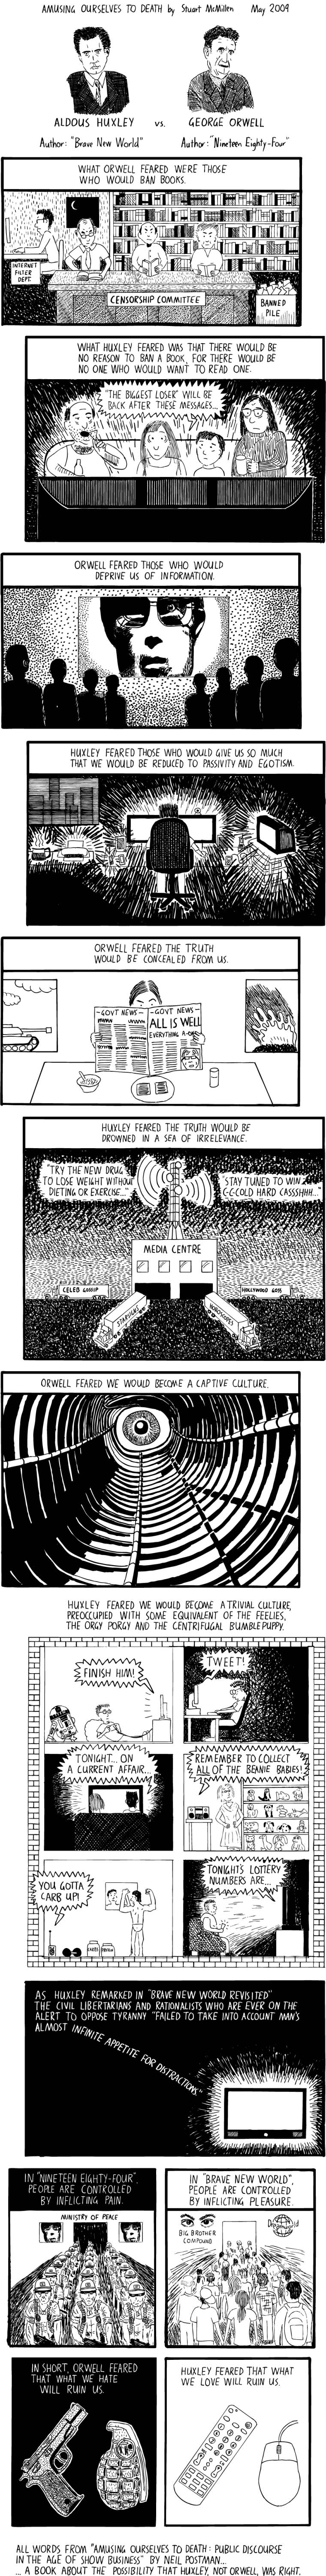 aldous huxley essay cun cun revival brave new world impressions on  huxley vs orwell the webcomic biblioklept stuart mcmillen s